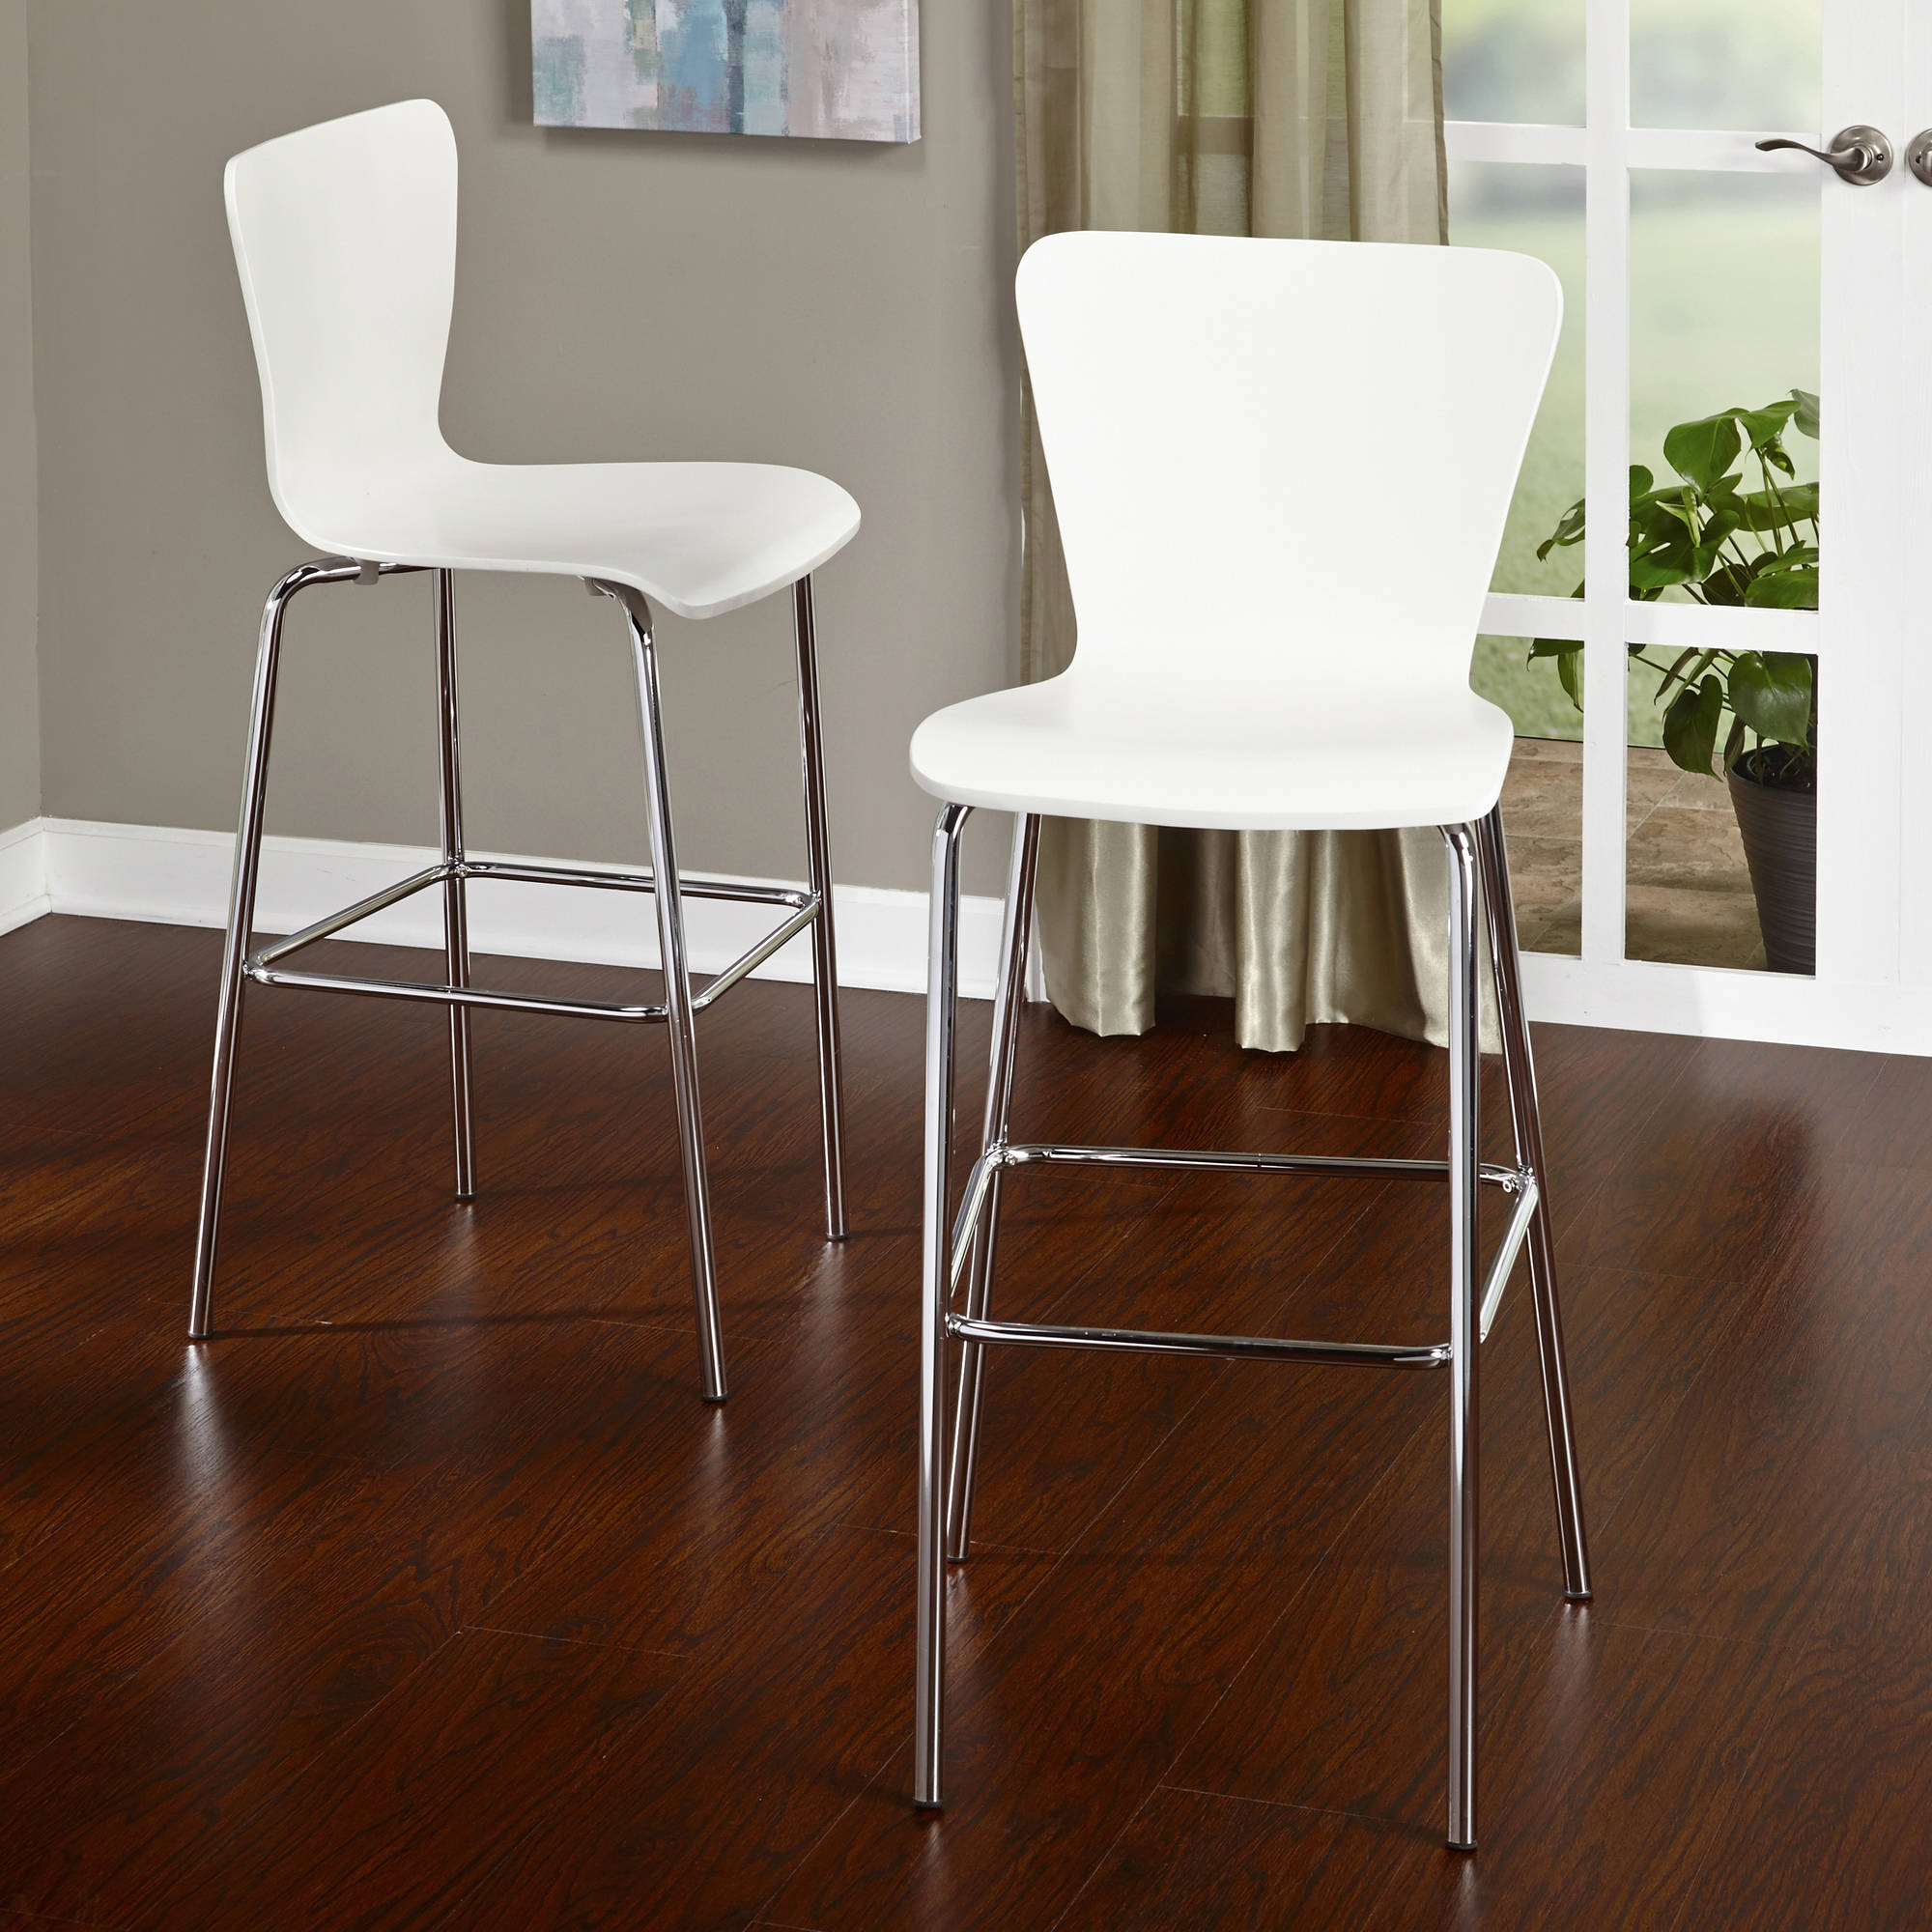 Pisa Counter Height Stool 24 Quot Set Of 2 Multiple Colors